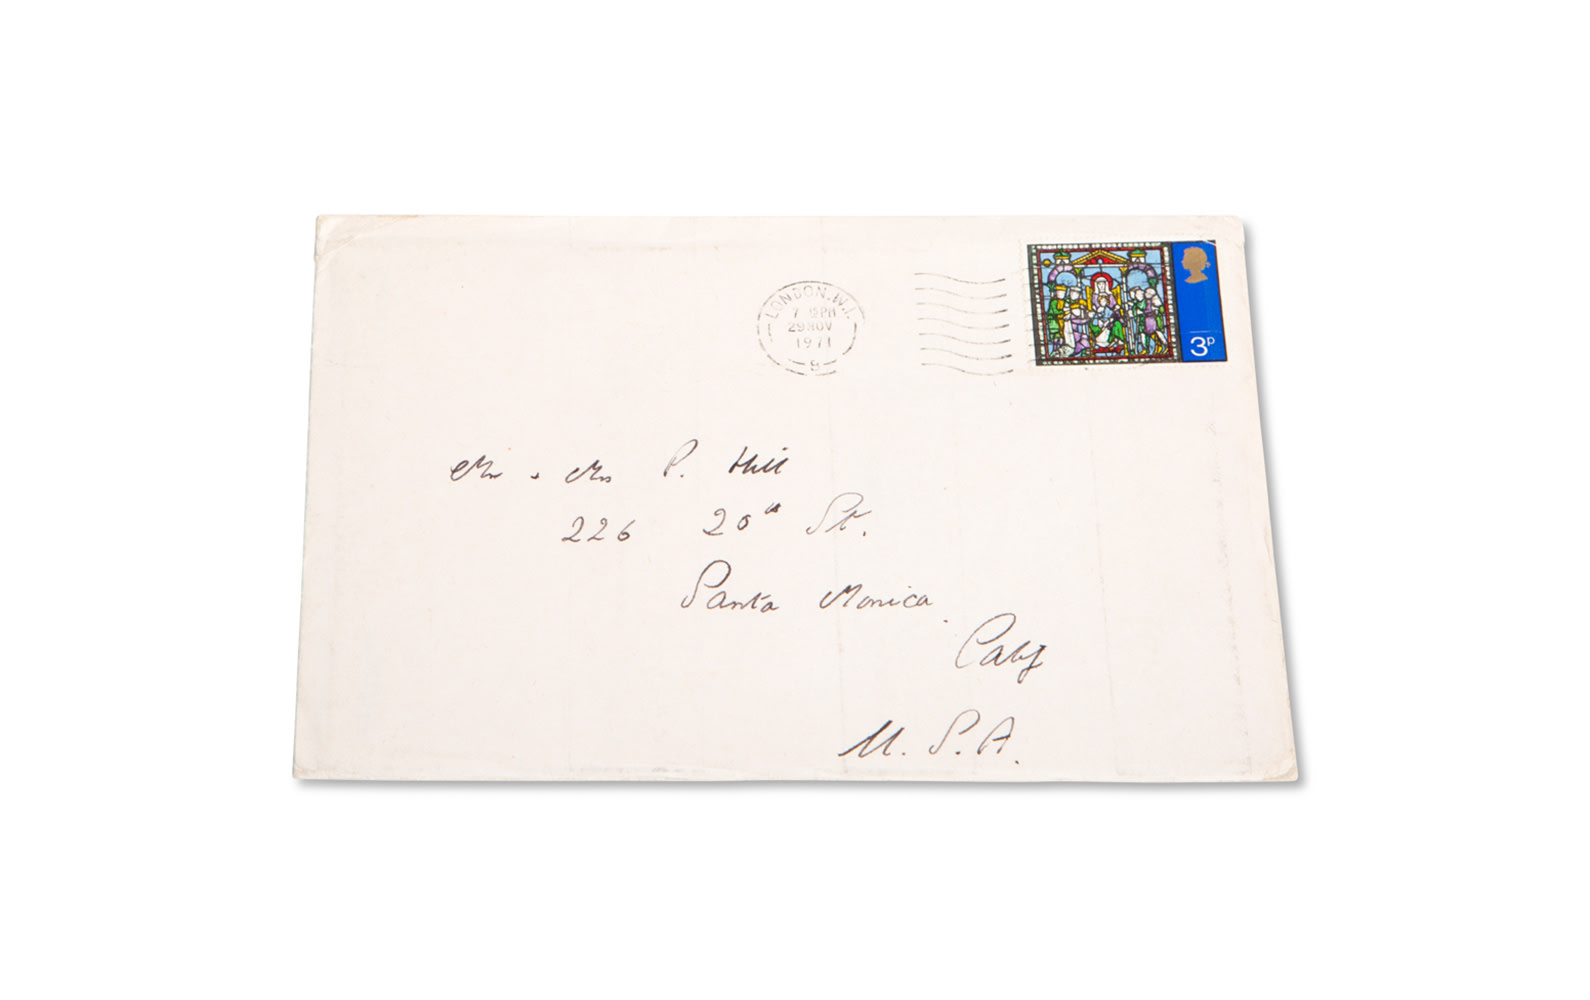 1971 Christmas Card from Stirling Moss to Phil Hill